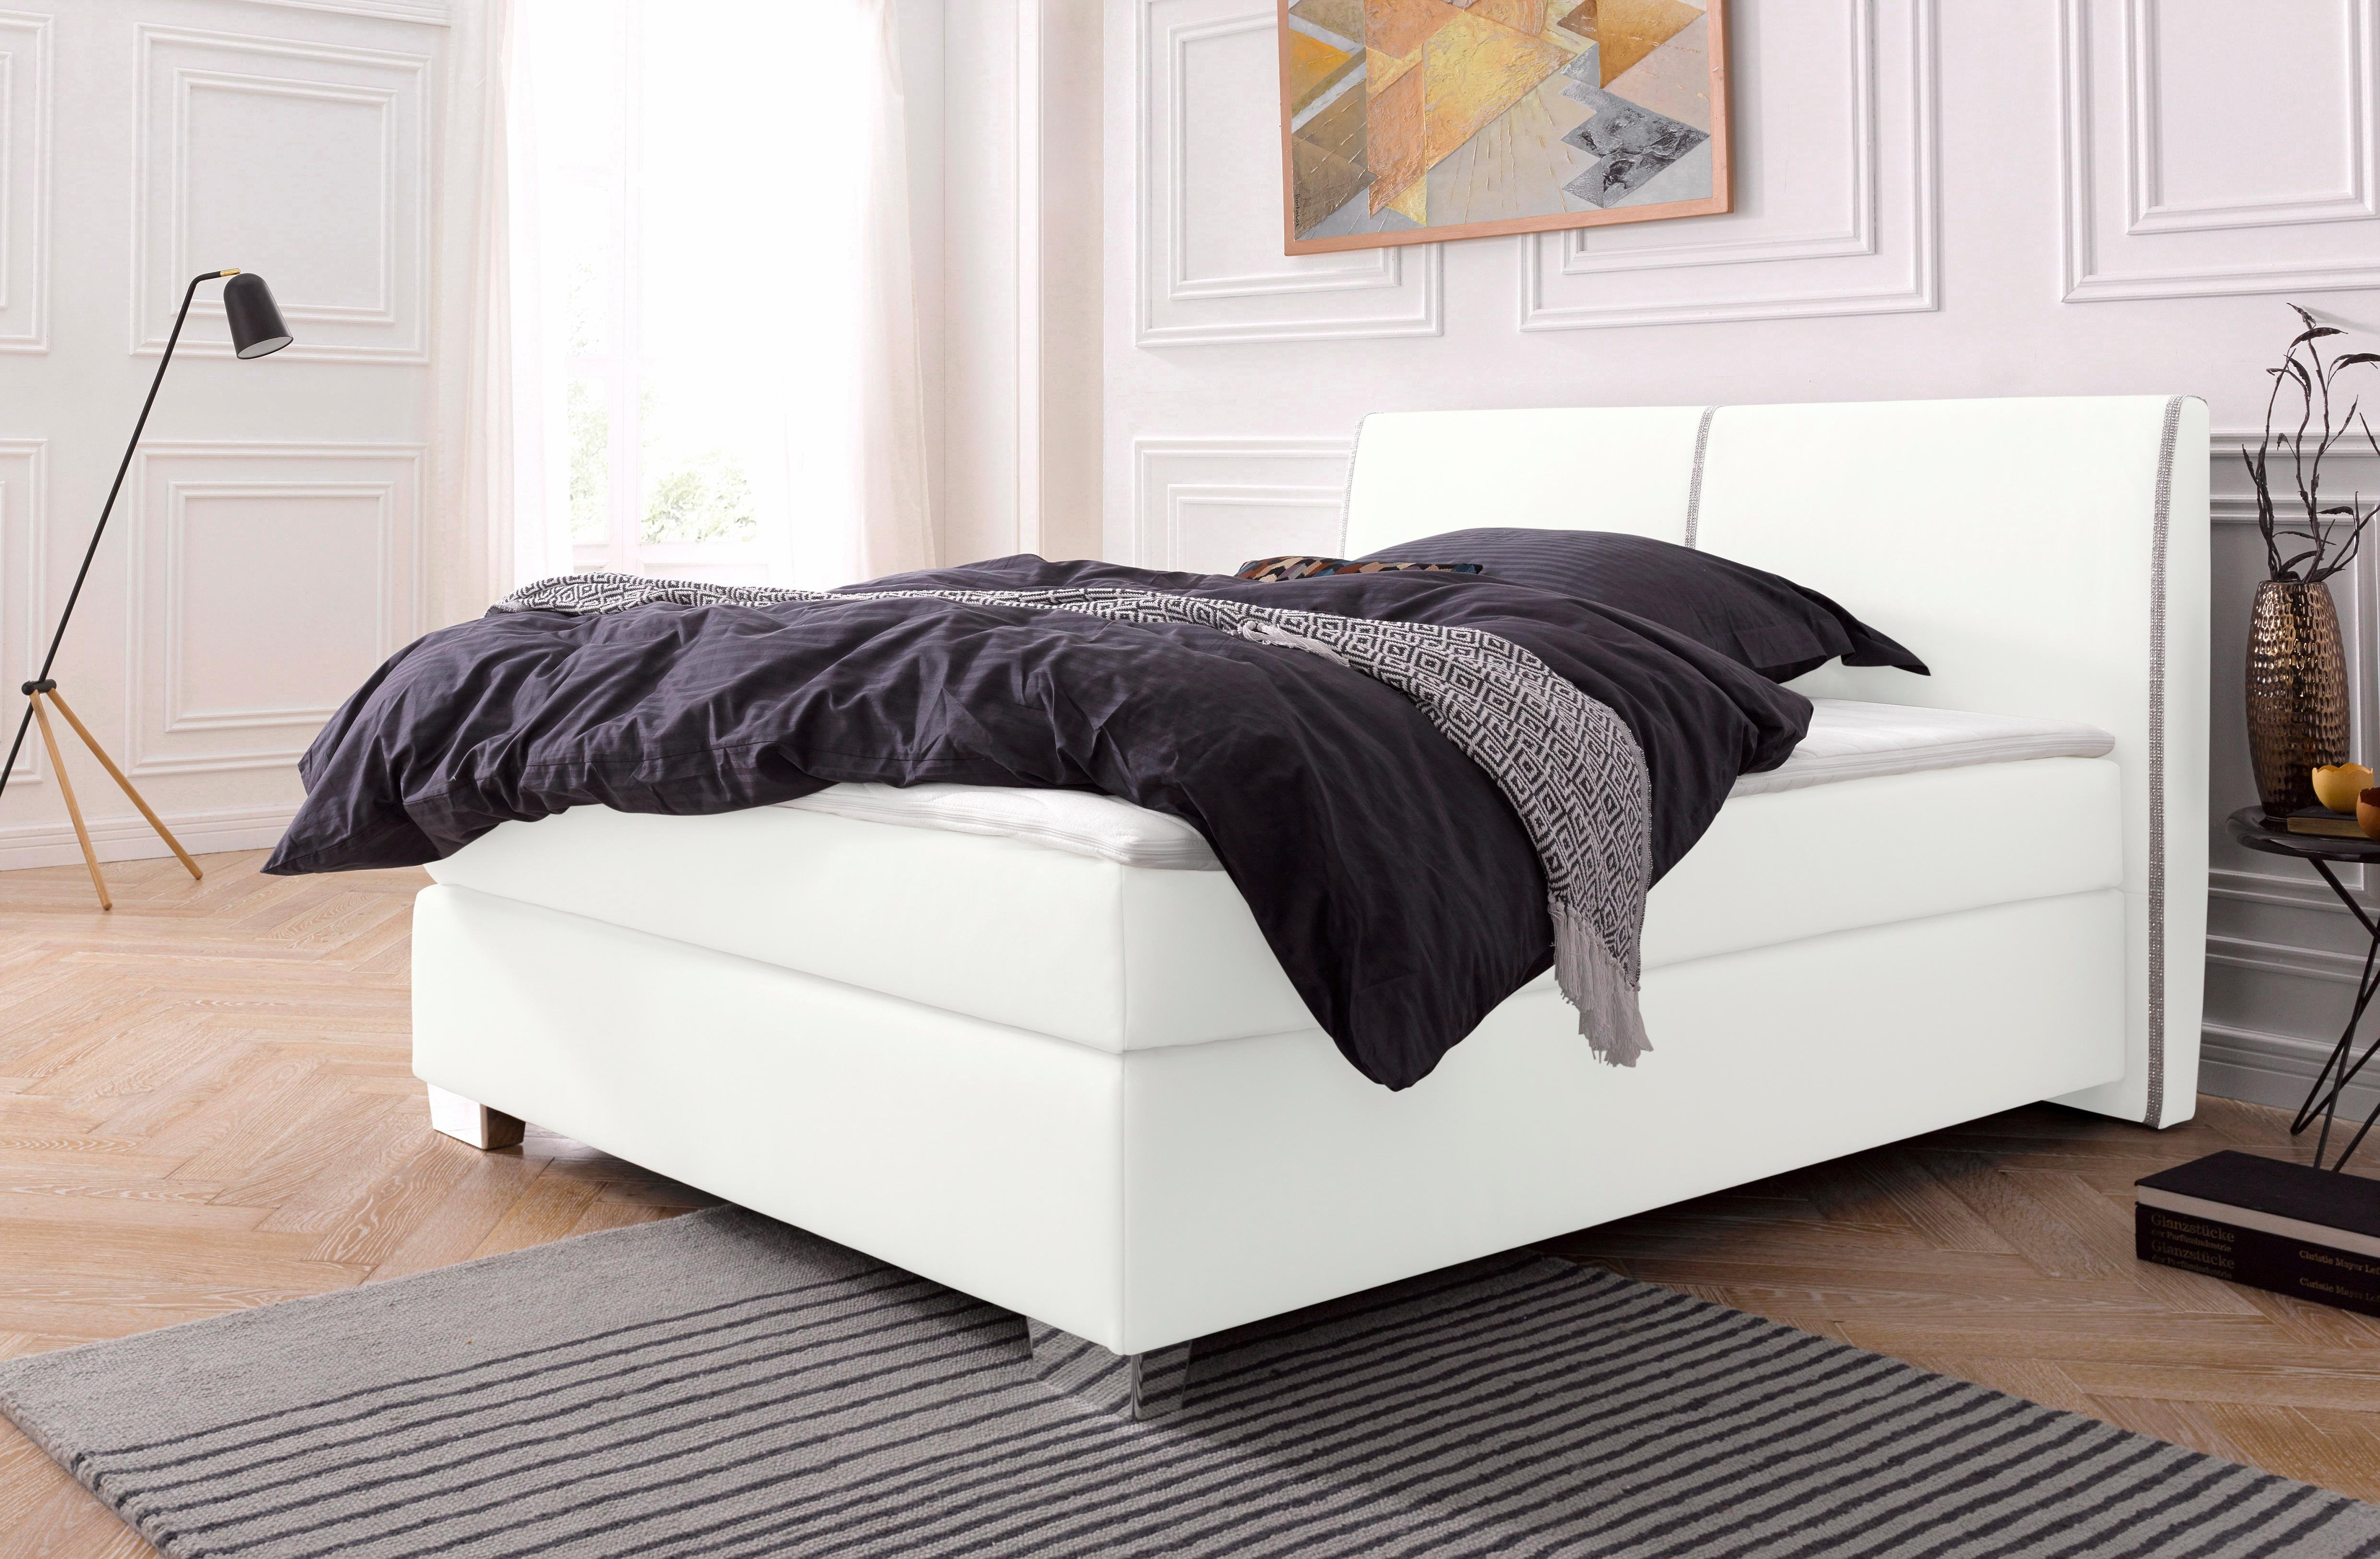 Afbeeldingsbron Boxspring incl topper